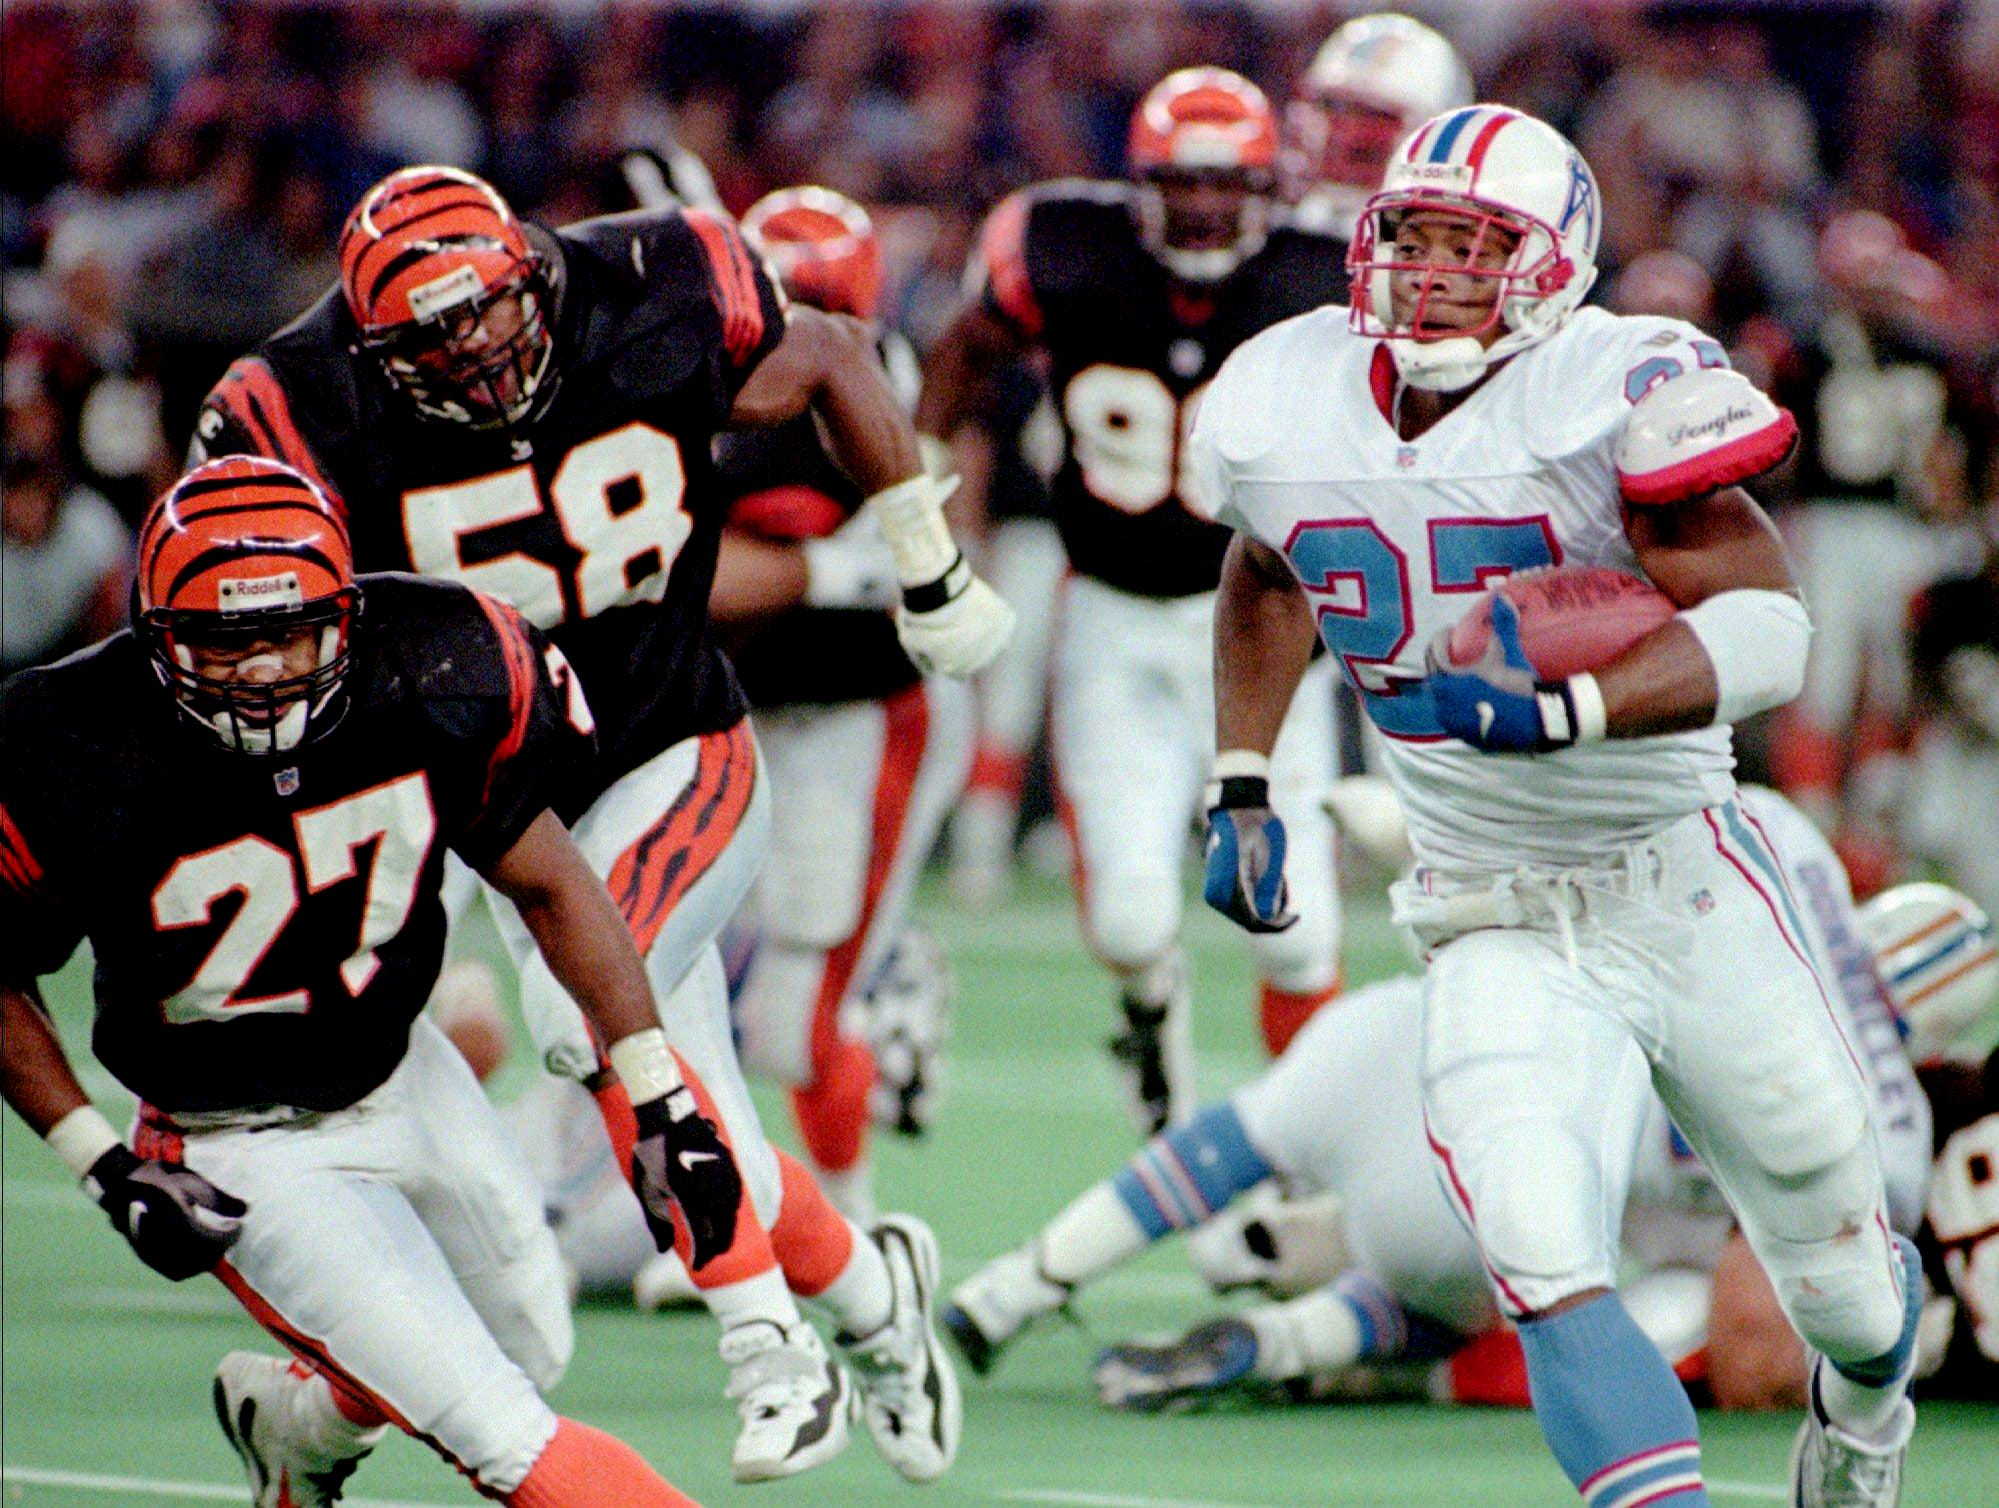 Houston Oilers running back Eddie George (27) is being pursues by Cincinnati Bengals defenders Bracey Walker (27) and Steve Tovar (58) on his way to a 45-yard touchdown run  Oct. 6, 1996 in Cincinnati. George gained 152 yards in the Oilers 30-27 win.